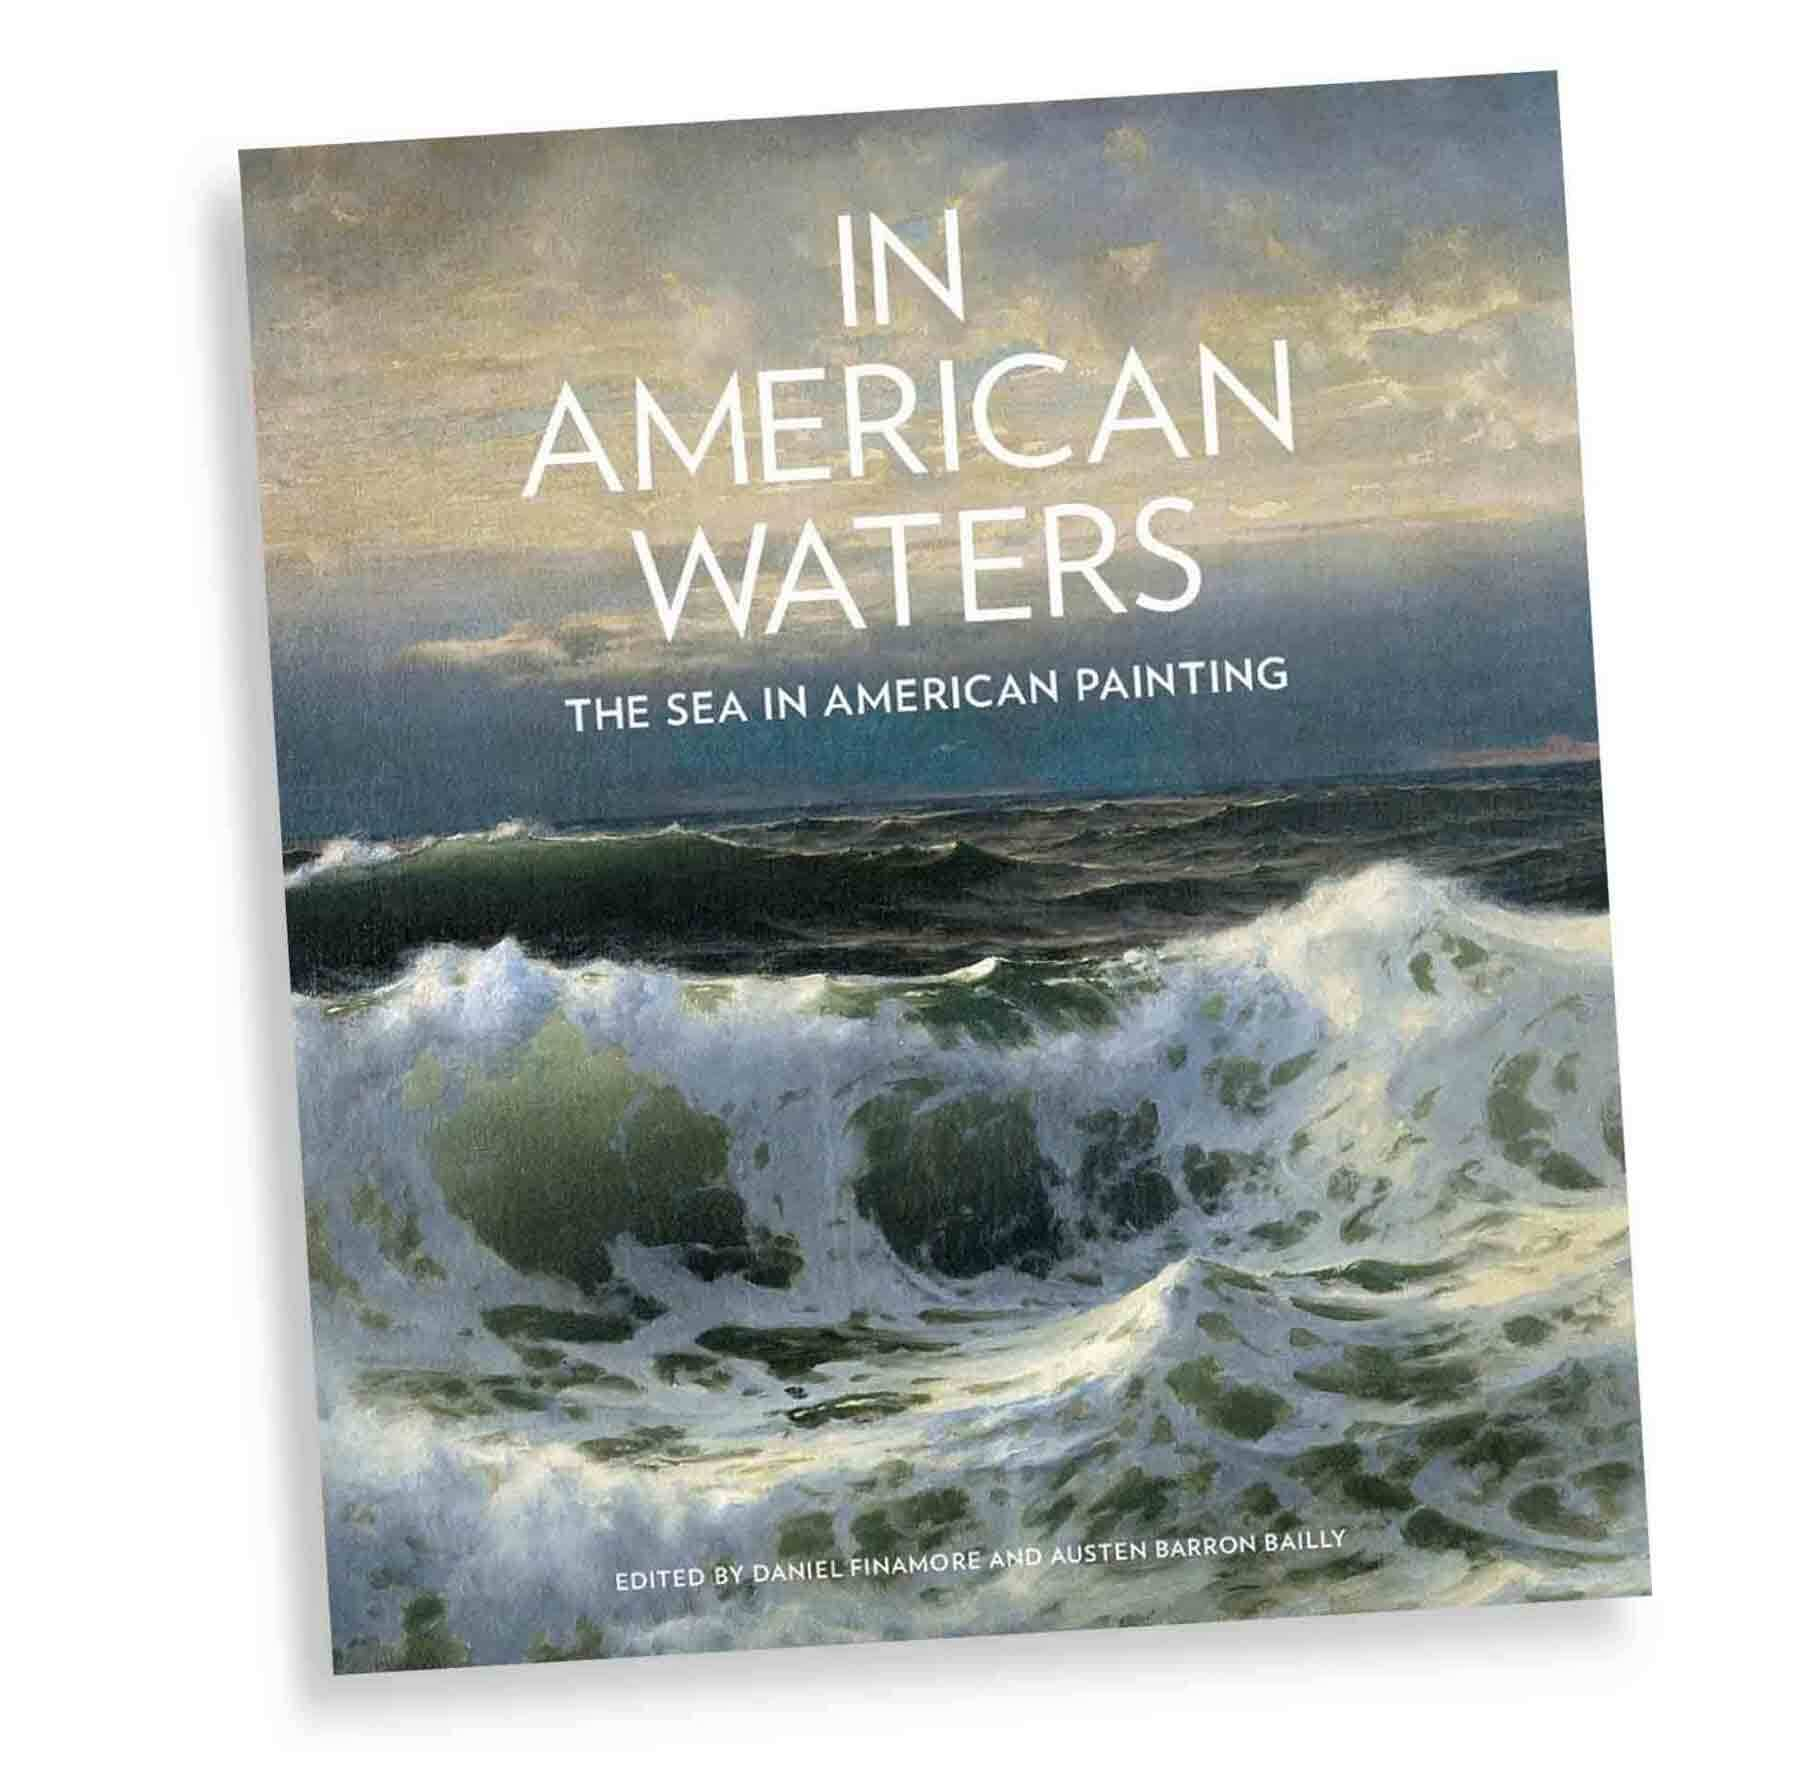 In American Waters catalogue